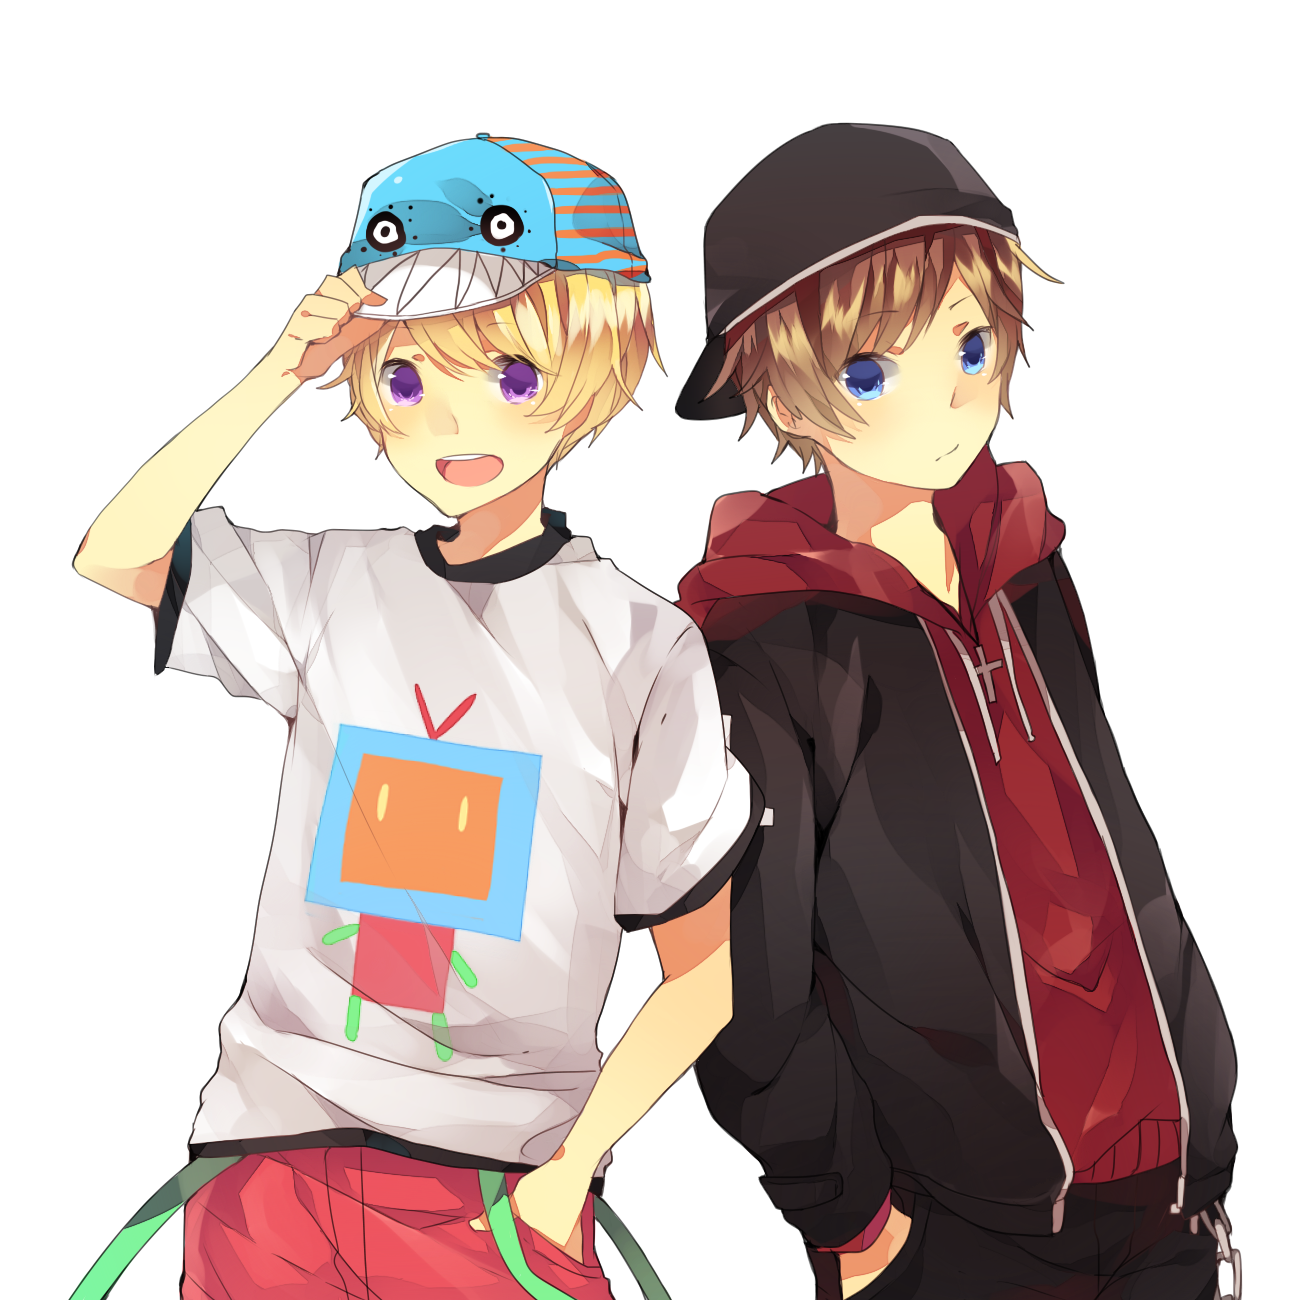 anime little boy Google Search anime boys Pinterest